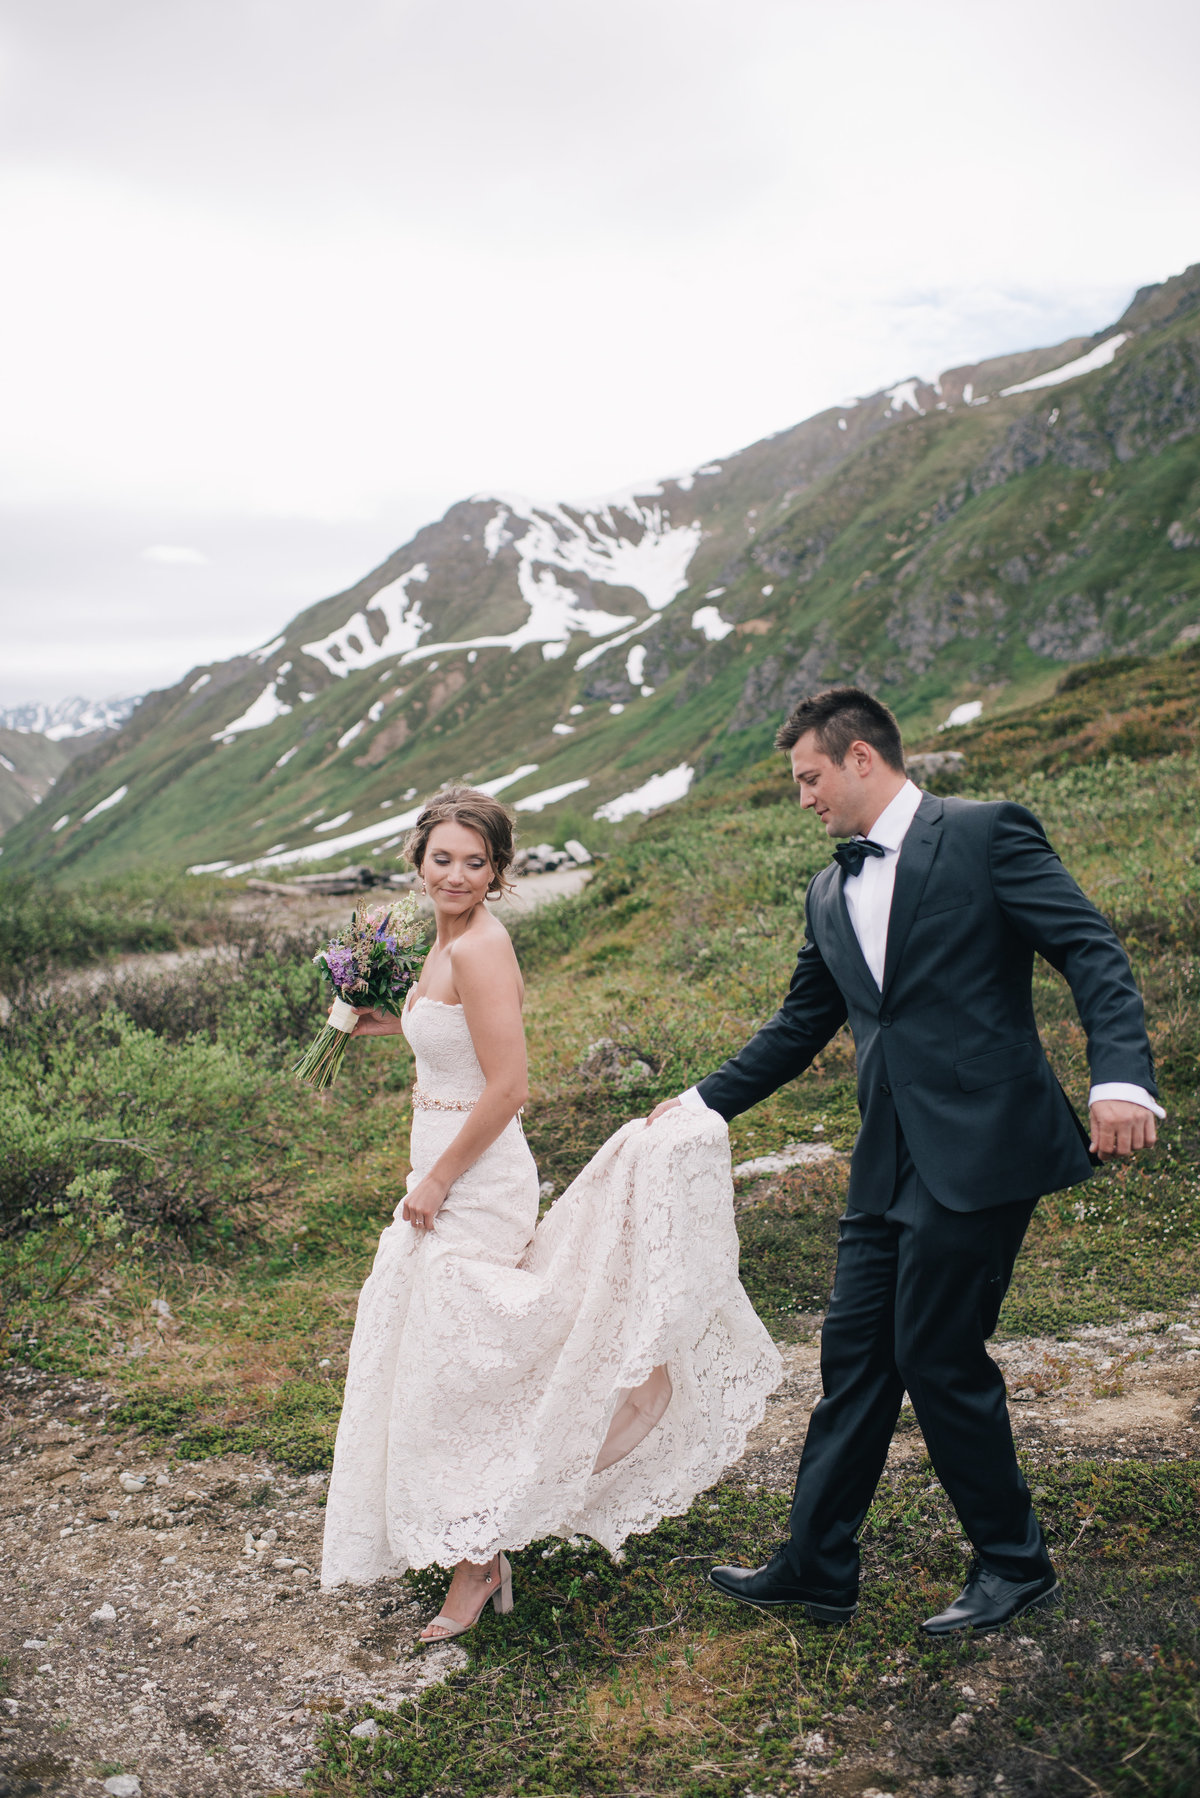 041_Erica Rose Photography_Anchorage Wedding Photographer_Jordan&Austin